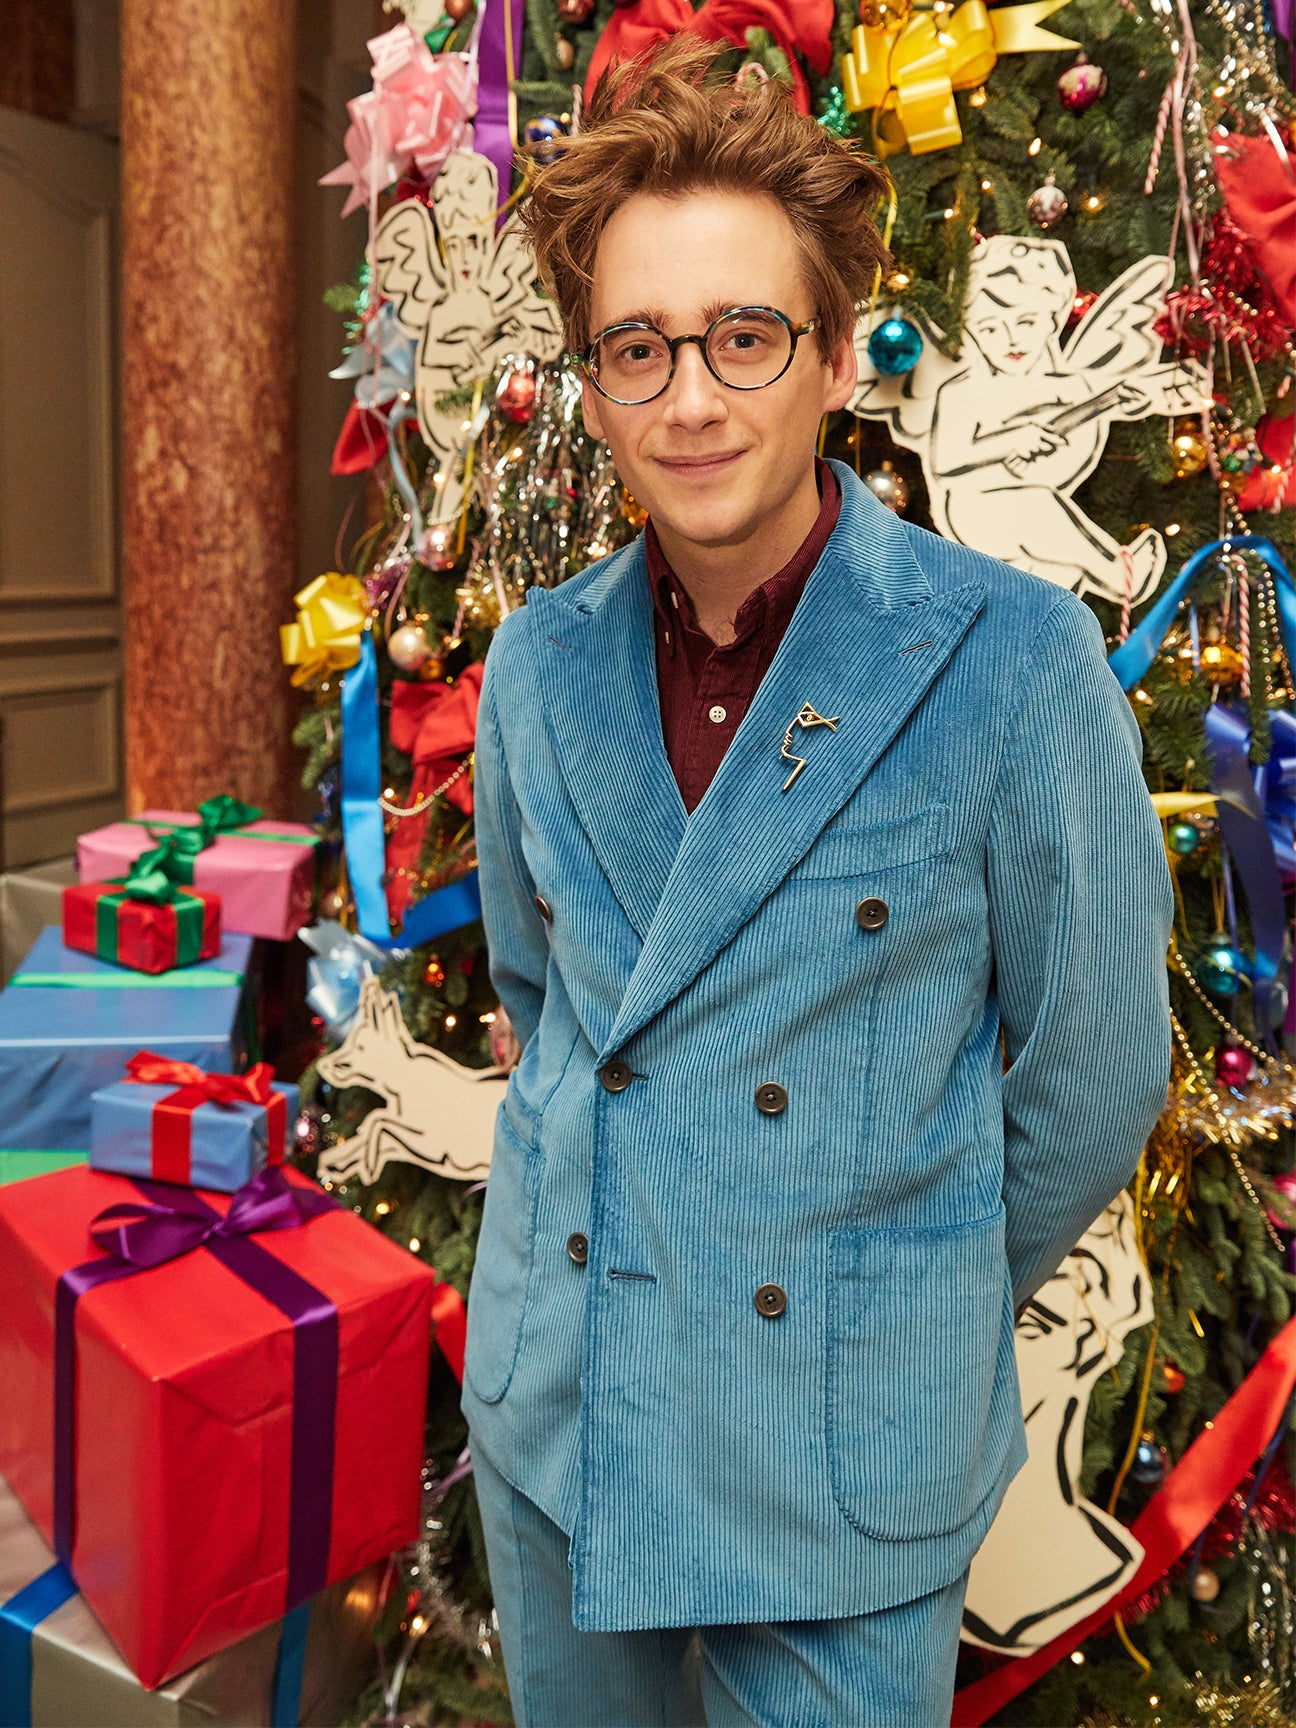 00-FEATURE-luke-edward-hall-christmas-tree-domino